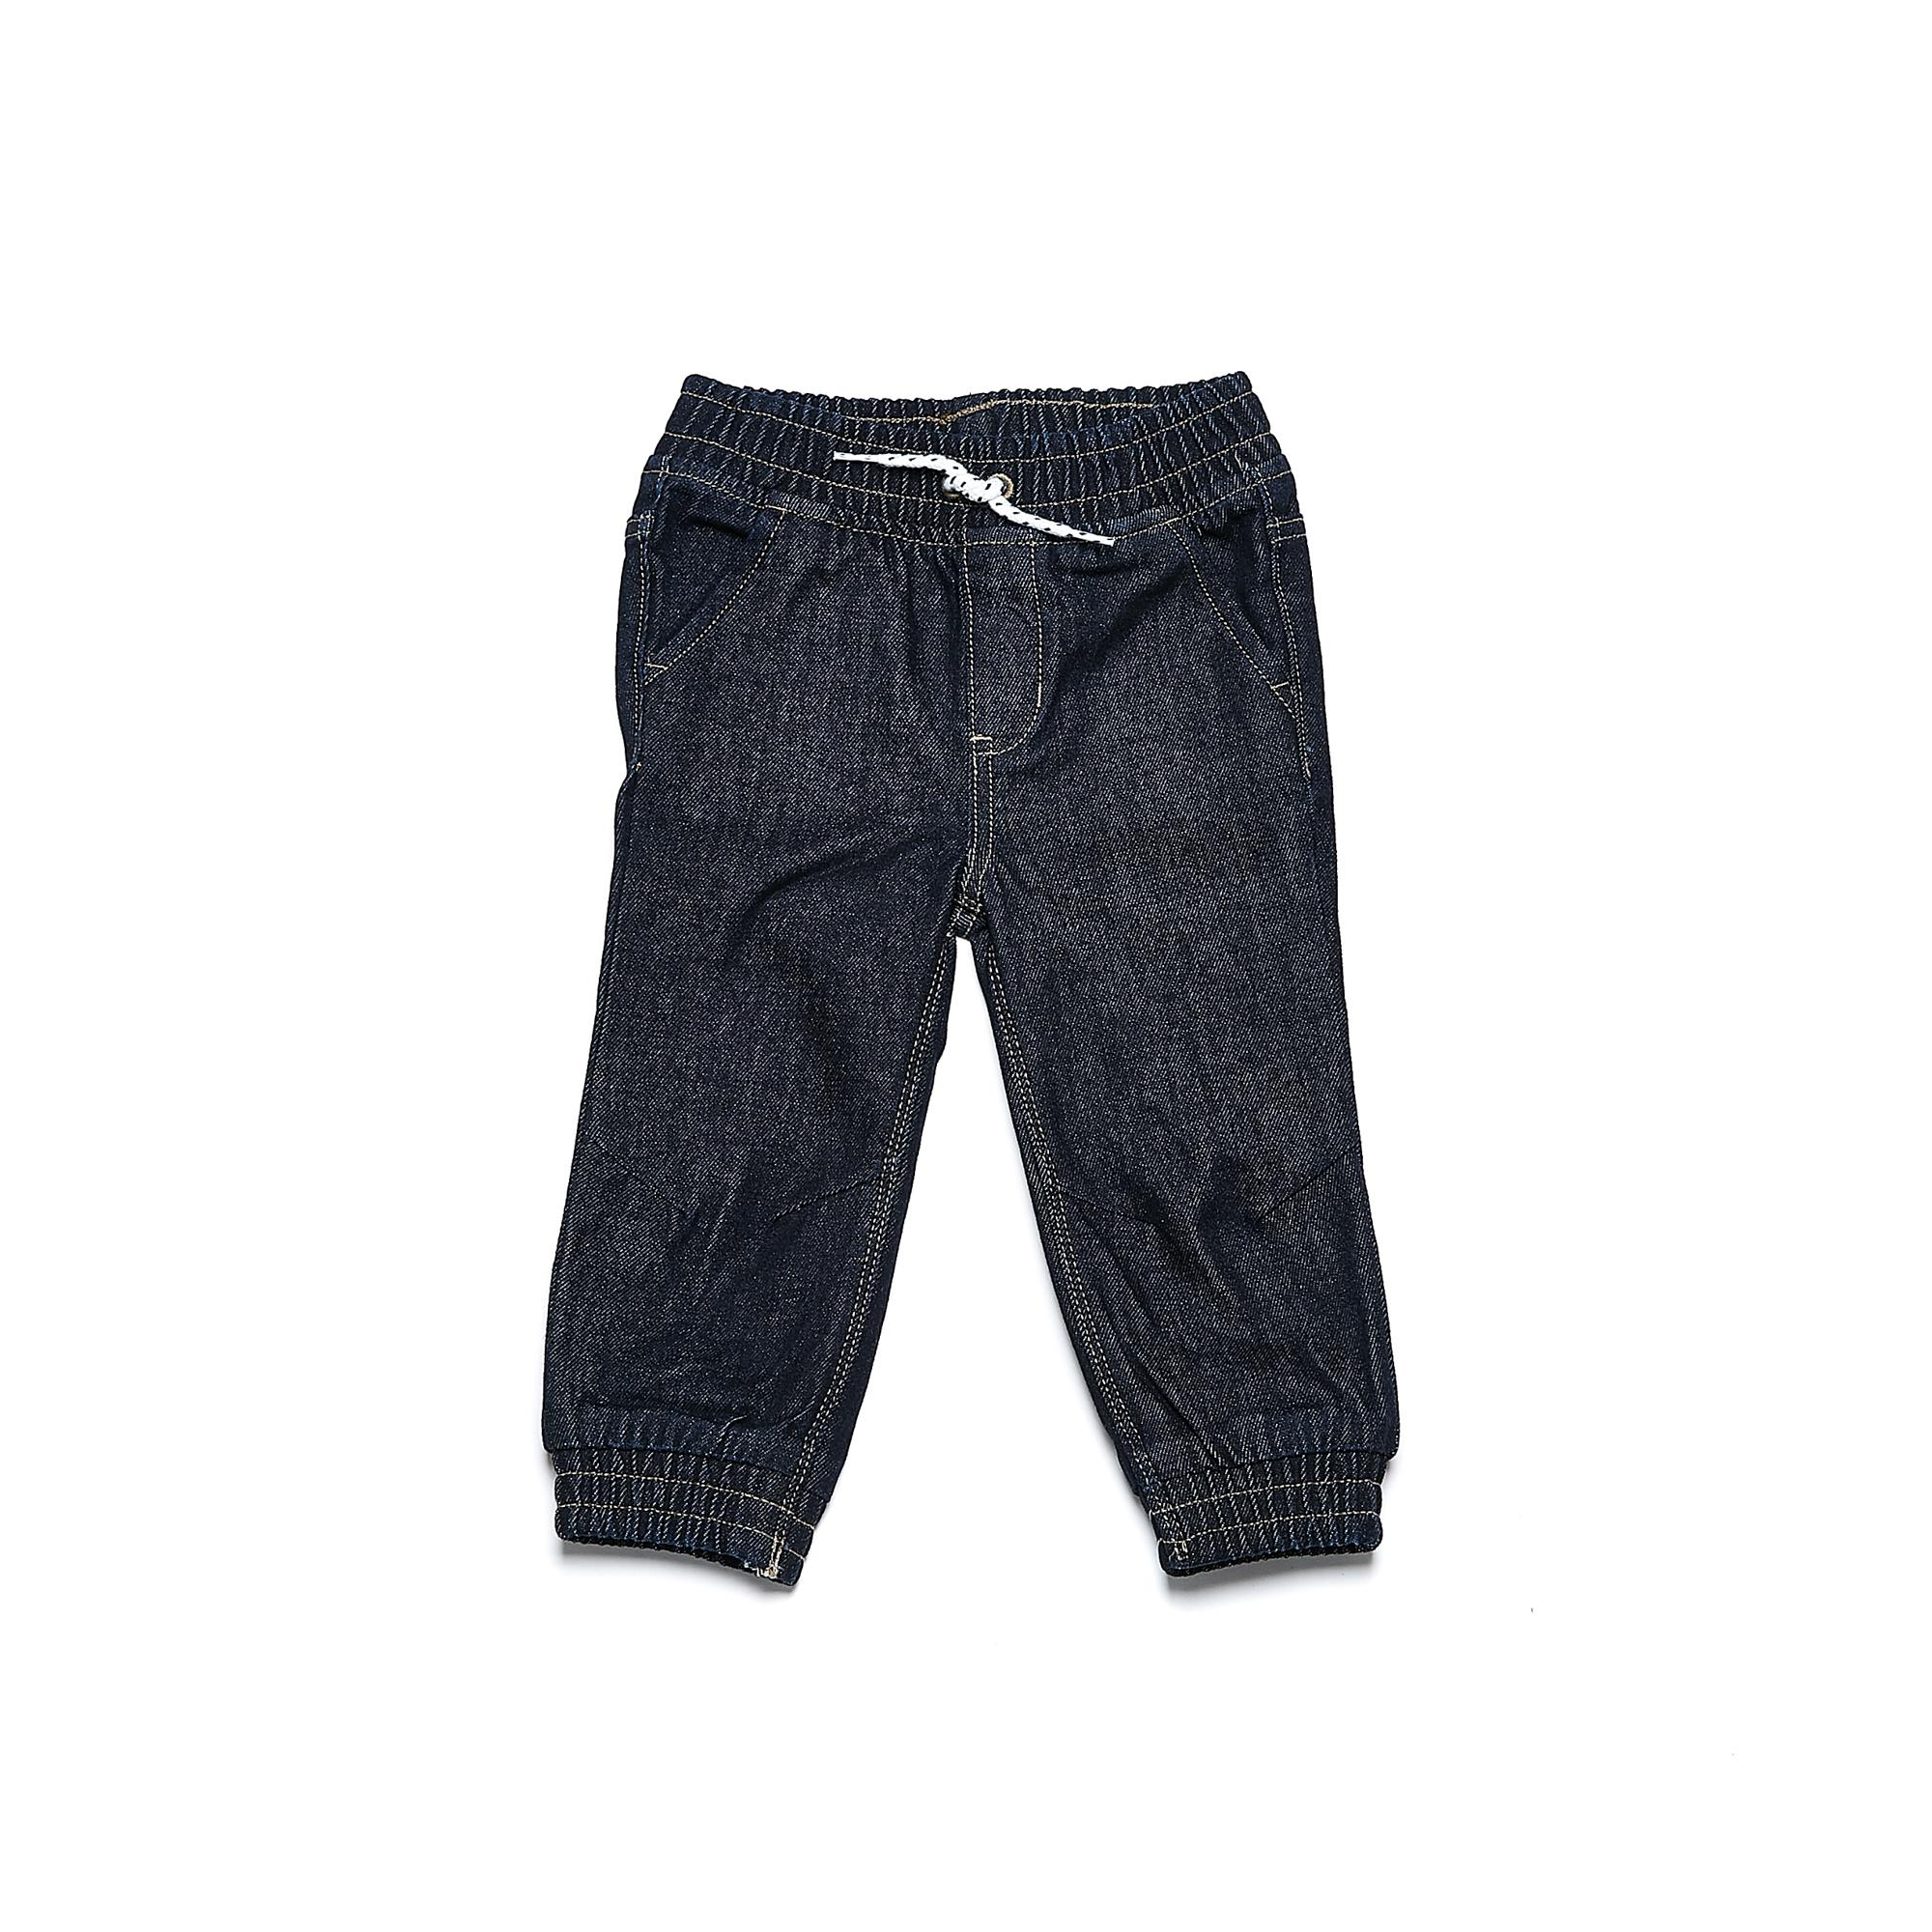 1d3abccd3 Baby Boy Jeans for sale - Boys Jeans online brands